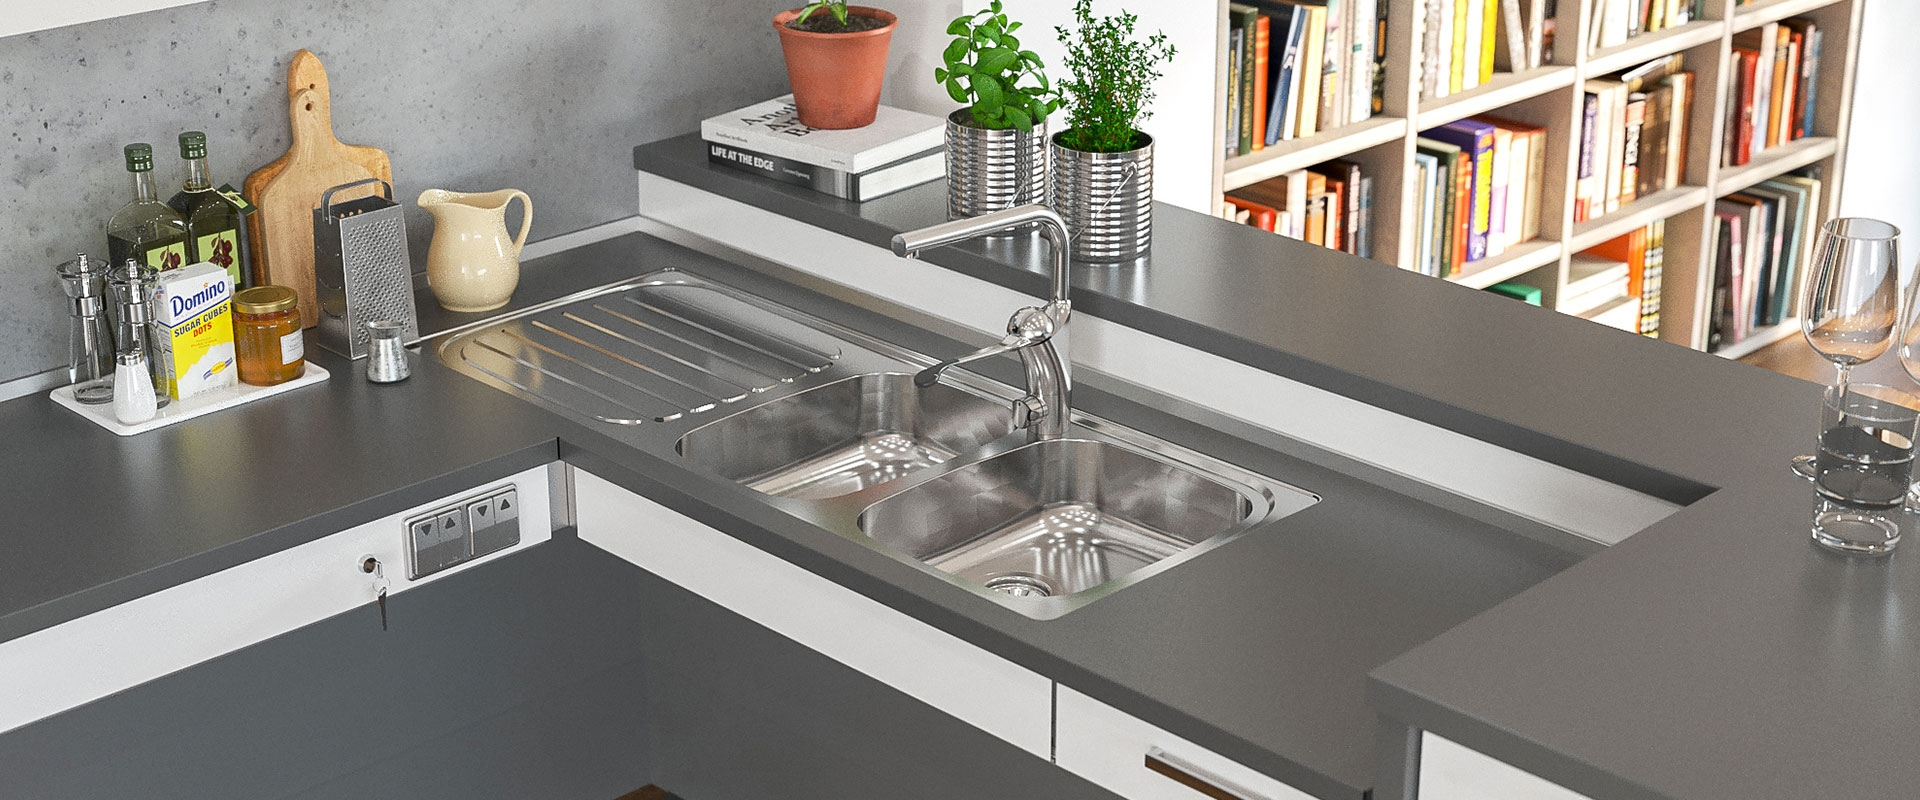 Inset Sinks With Shallow Bowl